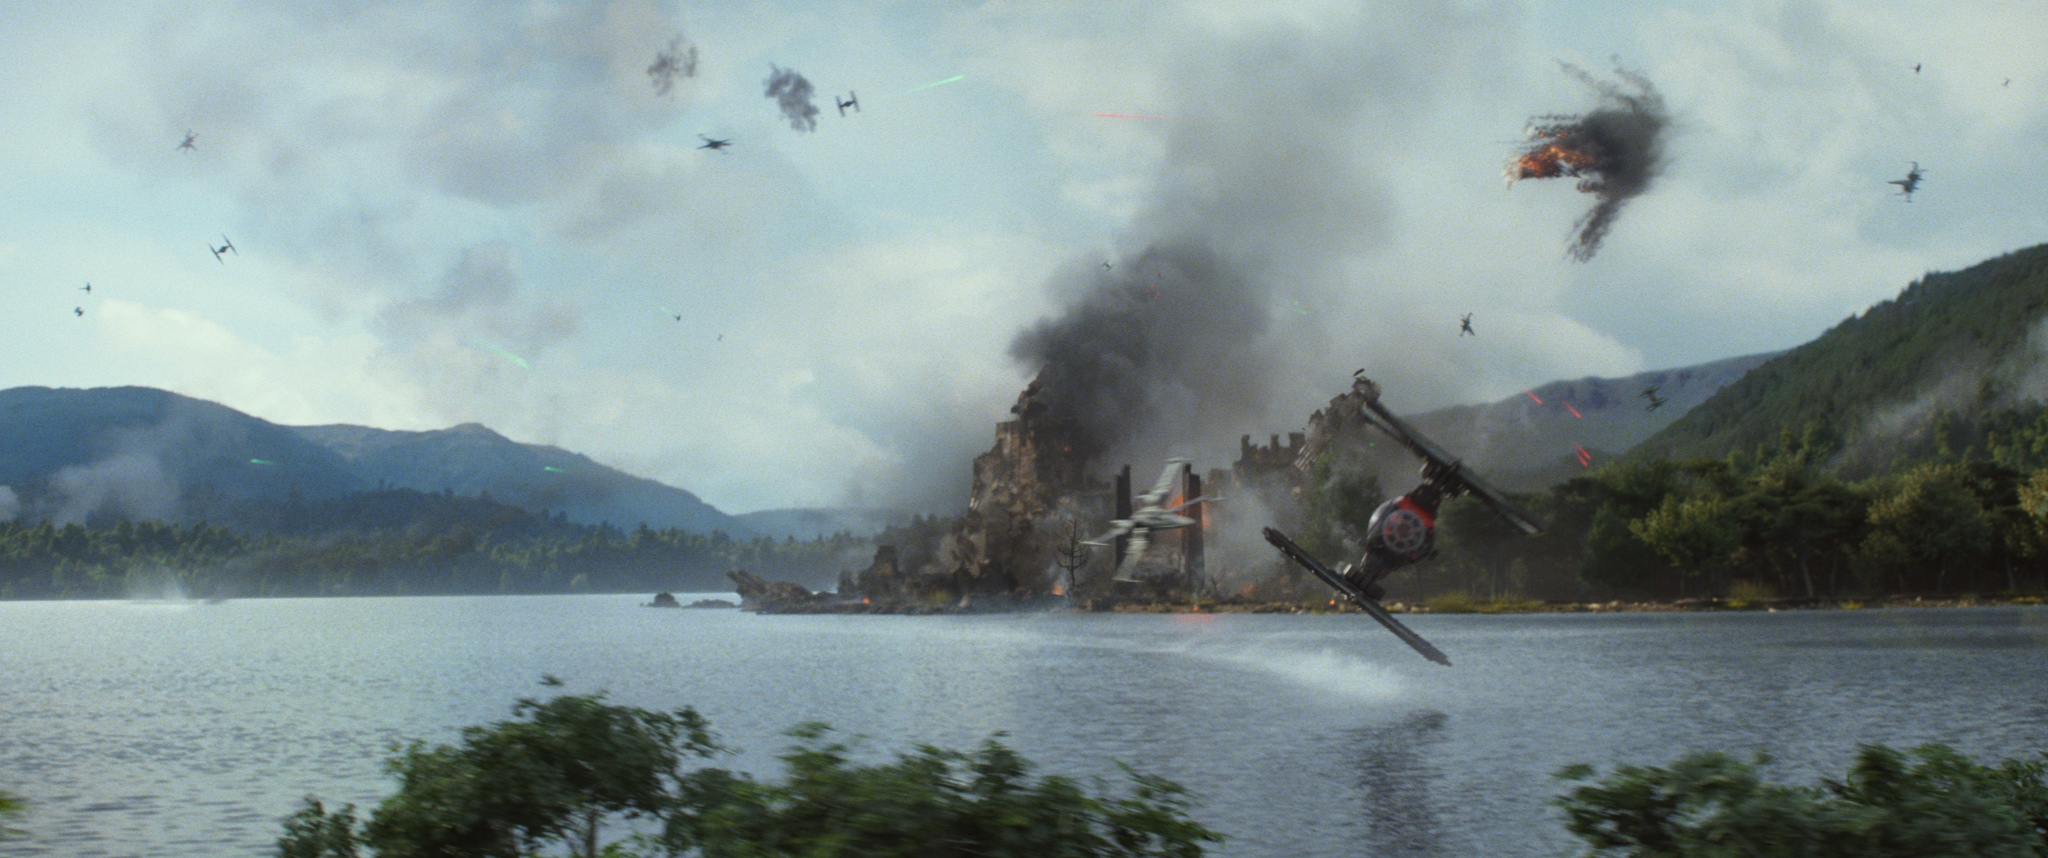 A TIE fighter zooms above water.